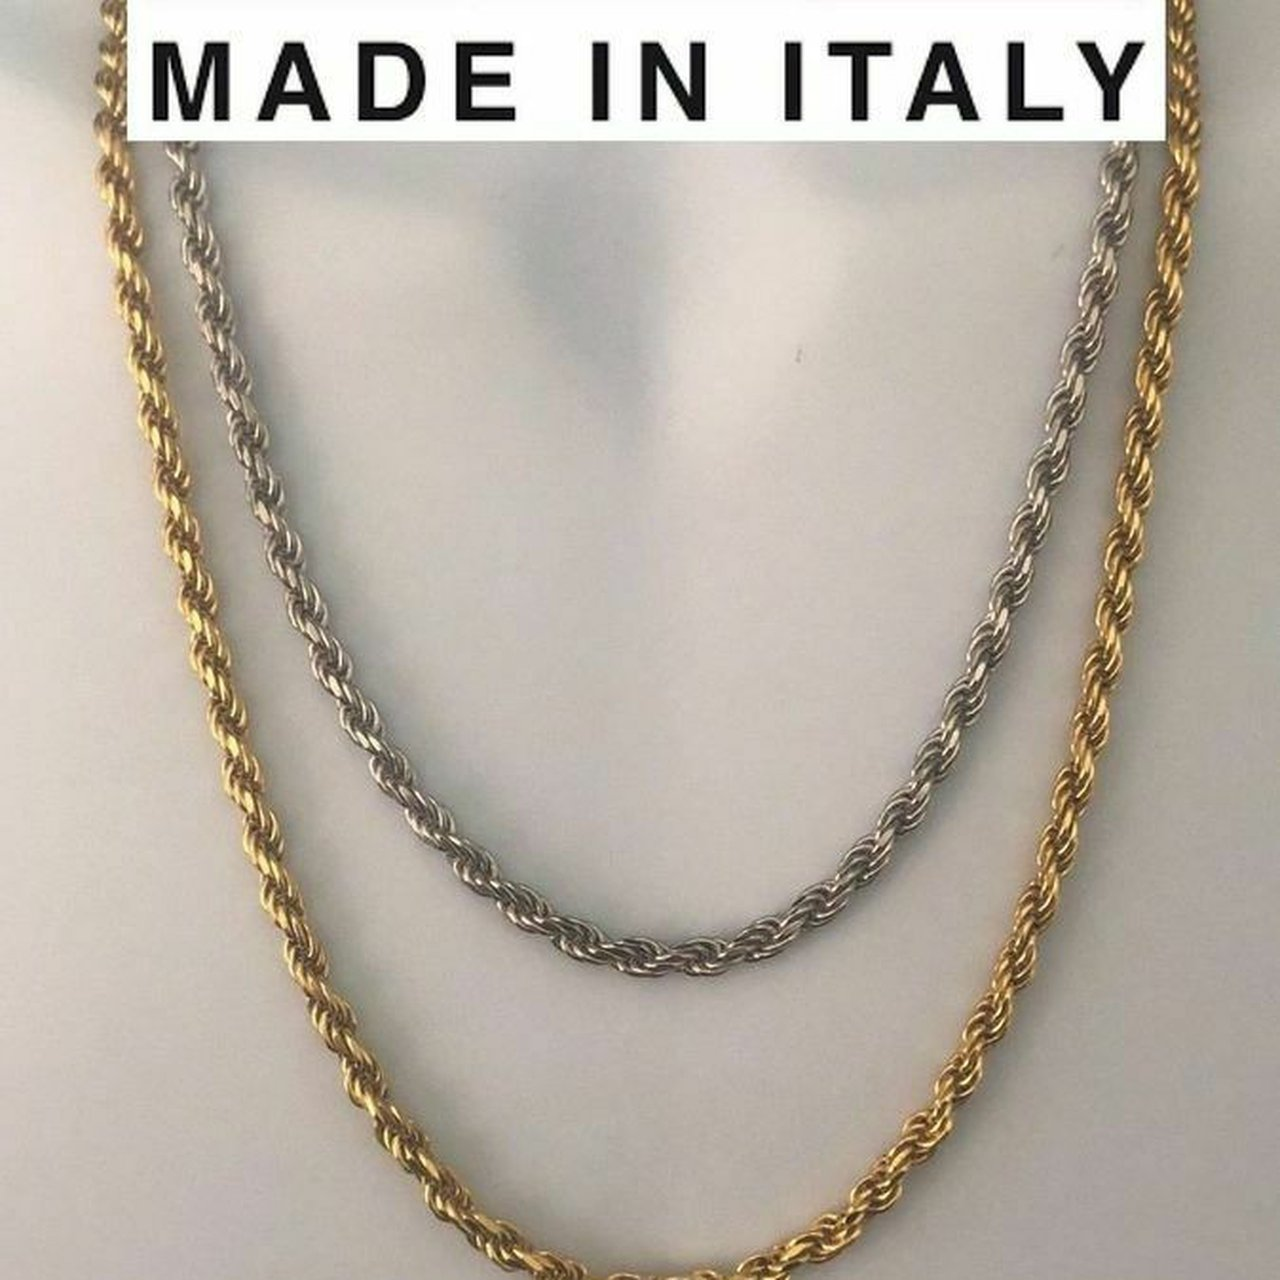 Men/'s 5mm 925 Sterling Silver Italian Rope Chain Necklace made in italy